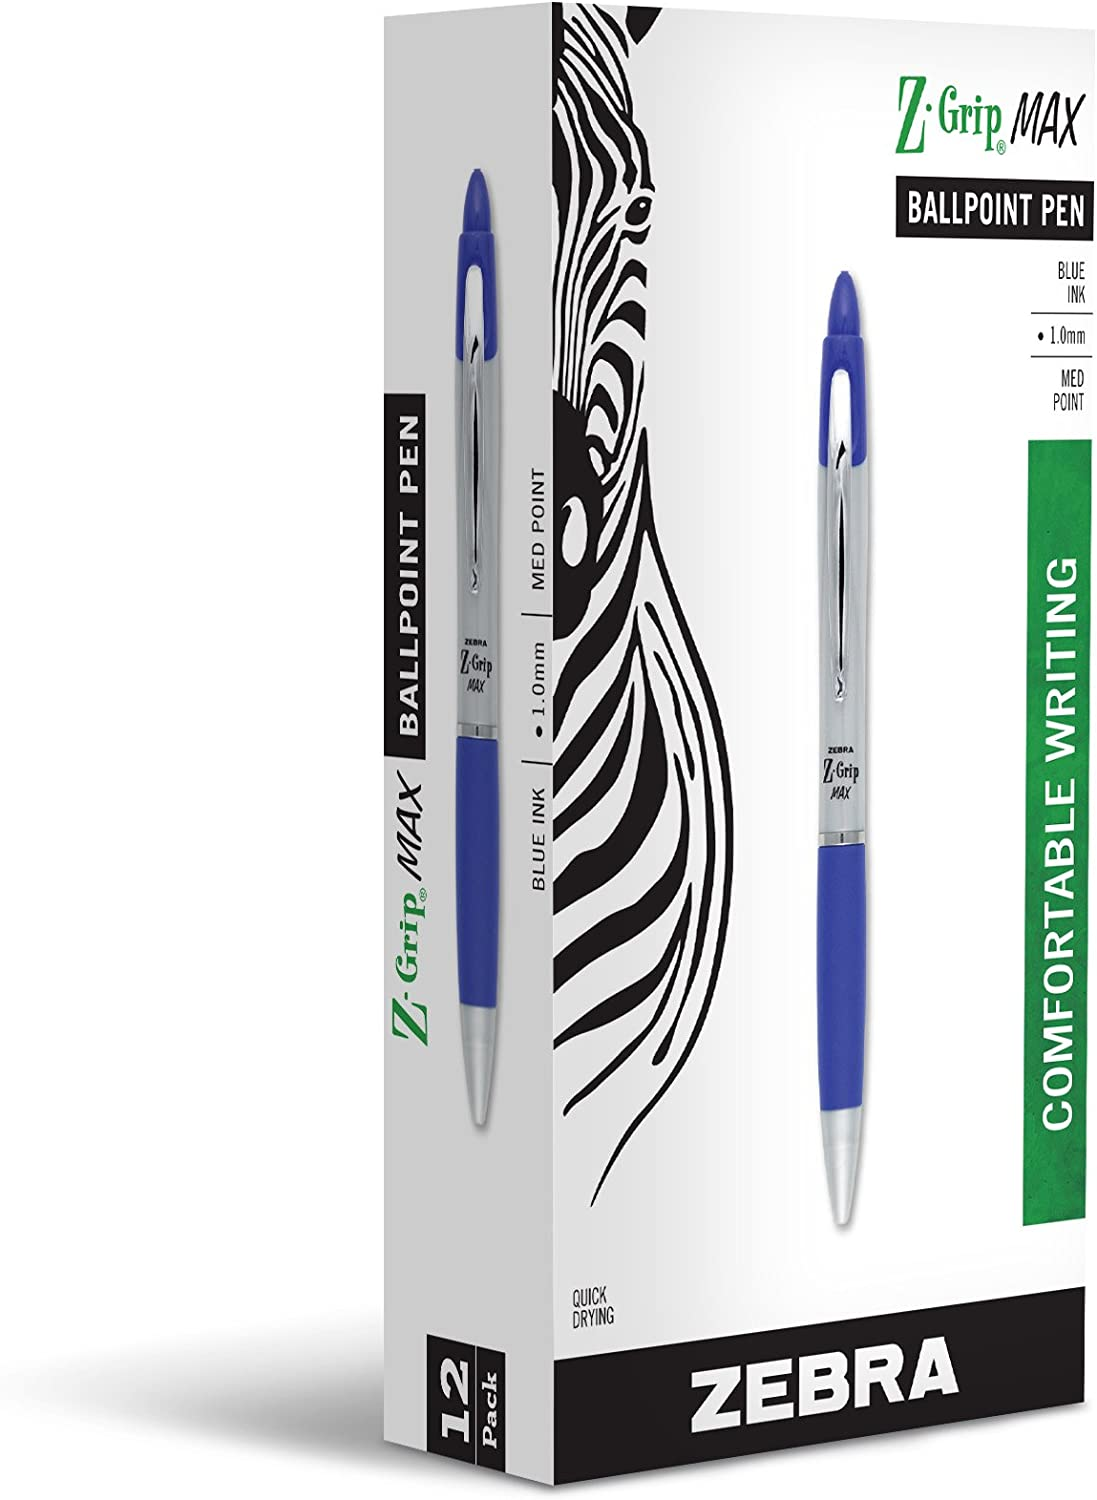 Zebra Pen Z-Grip MAX Retractable Ballpoint Pen, Medium Point, 1.0mm, Silver Barrel, Blue Ink, 12 Pack